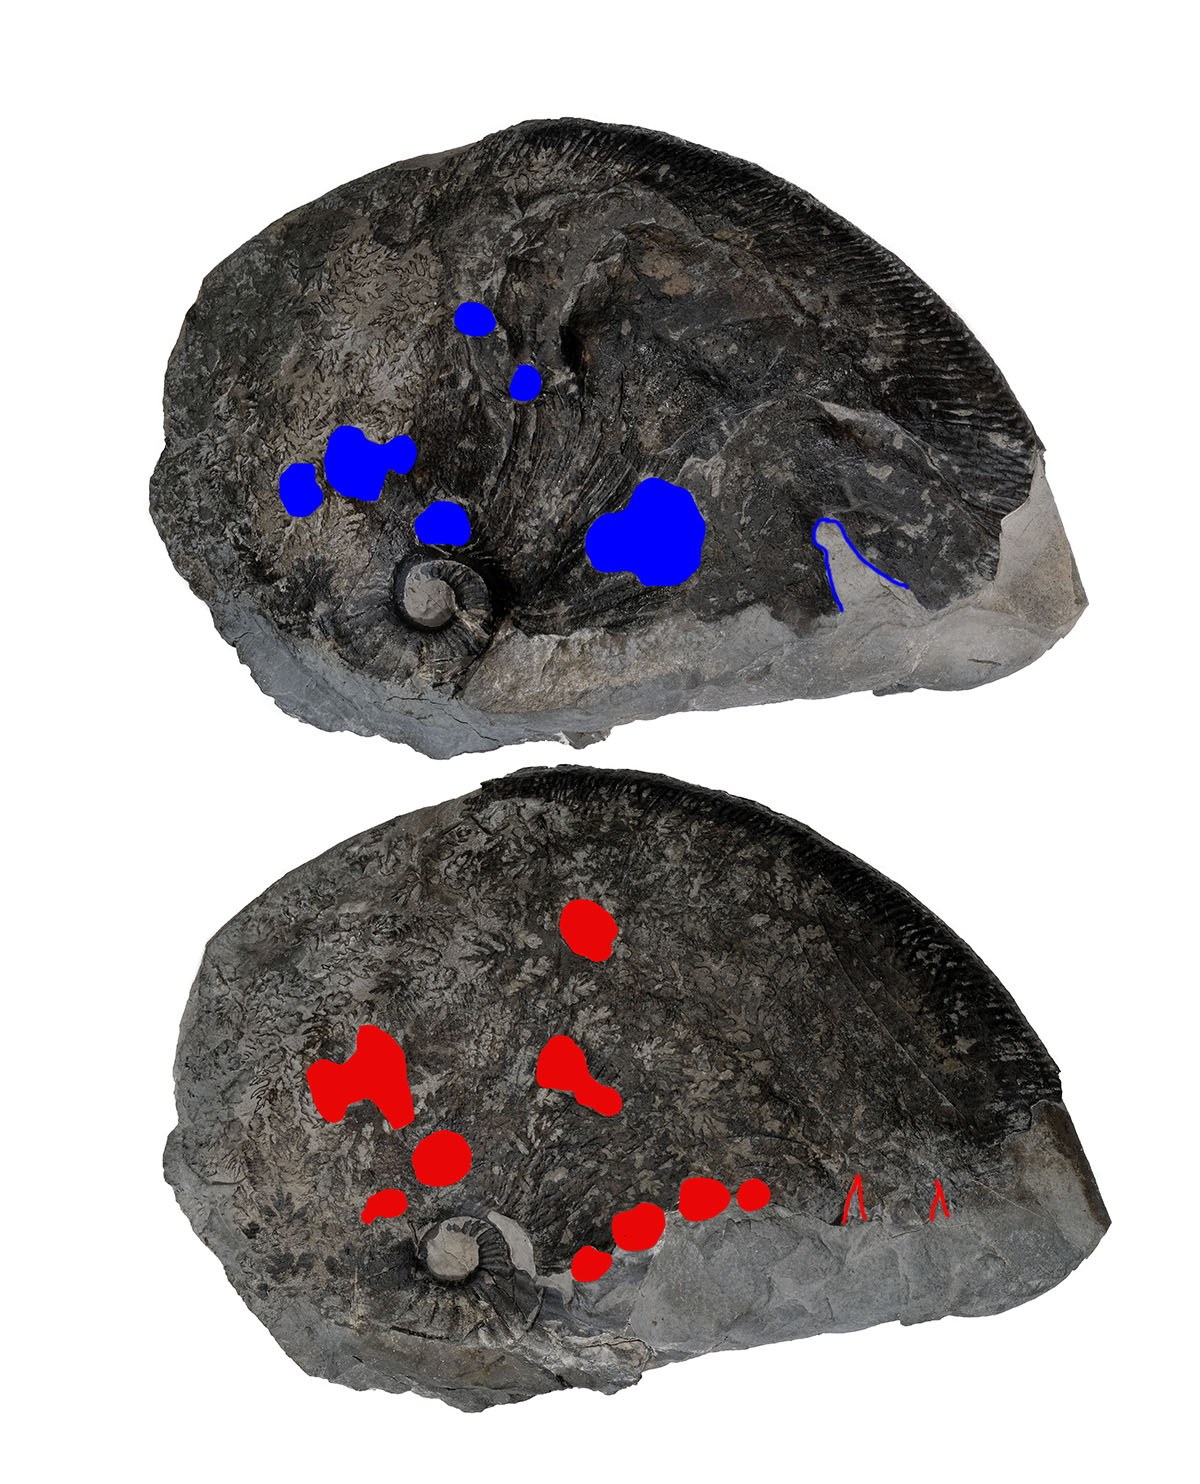 Both sides of ammonite shown with bite marks shown in red and blue, also possible sratch marks and tear-outs